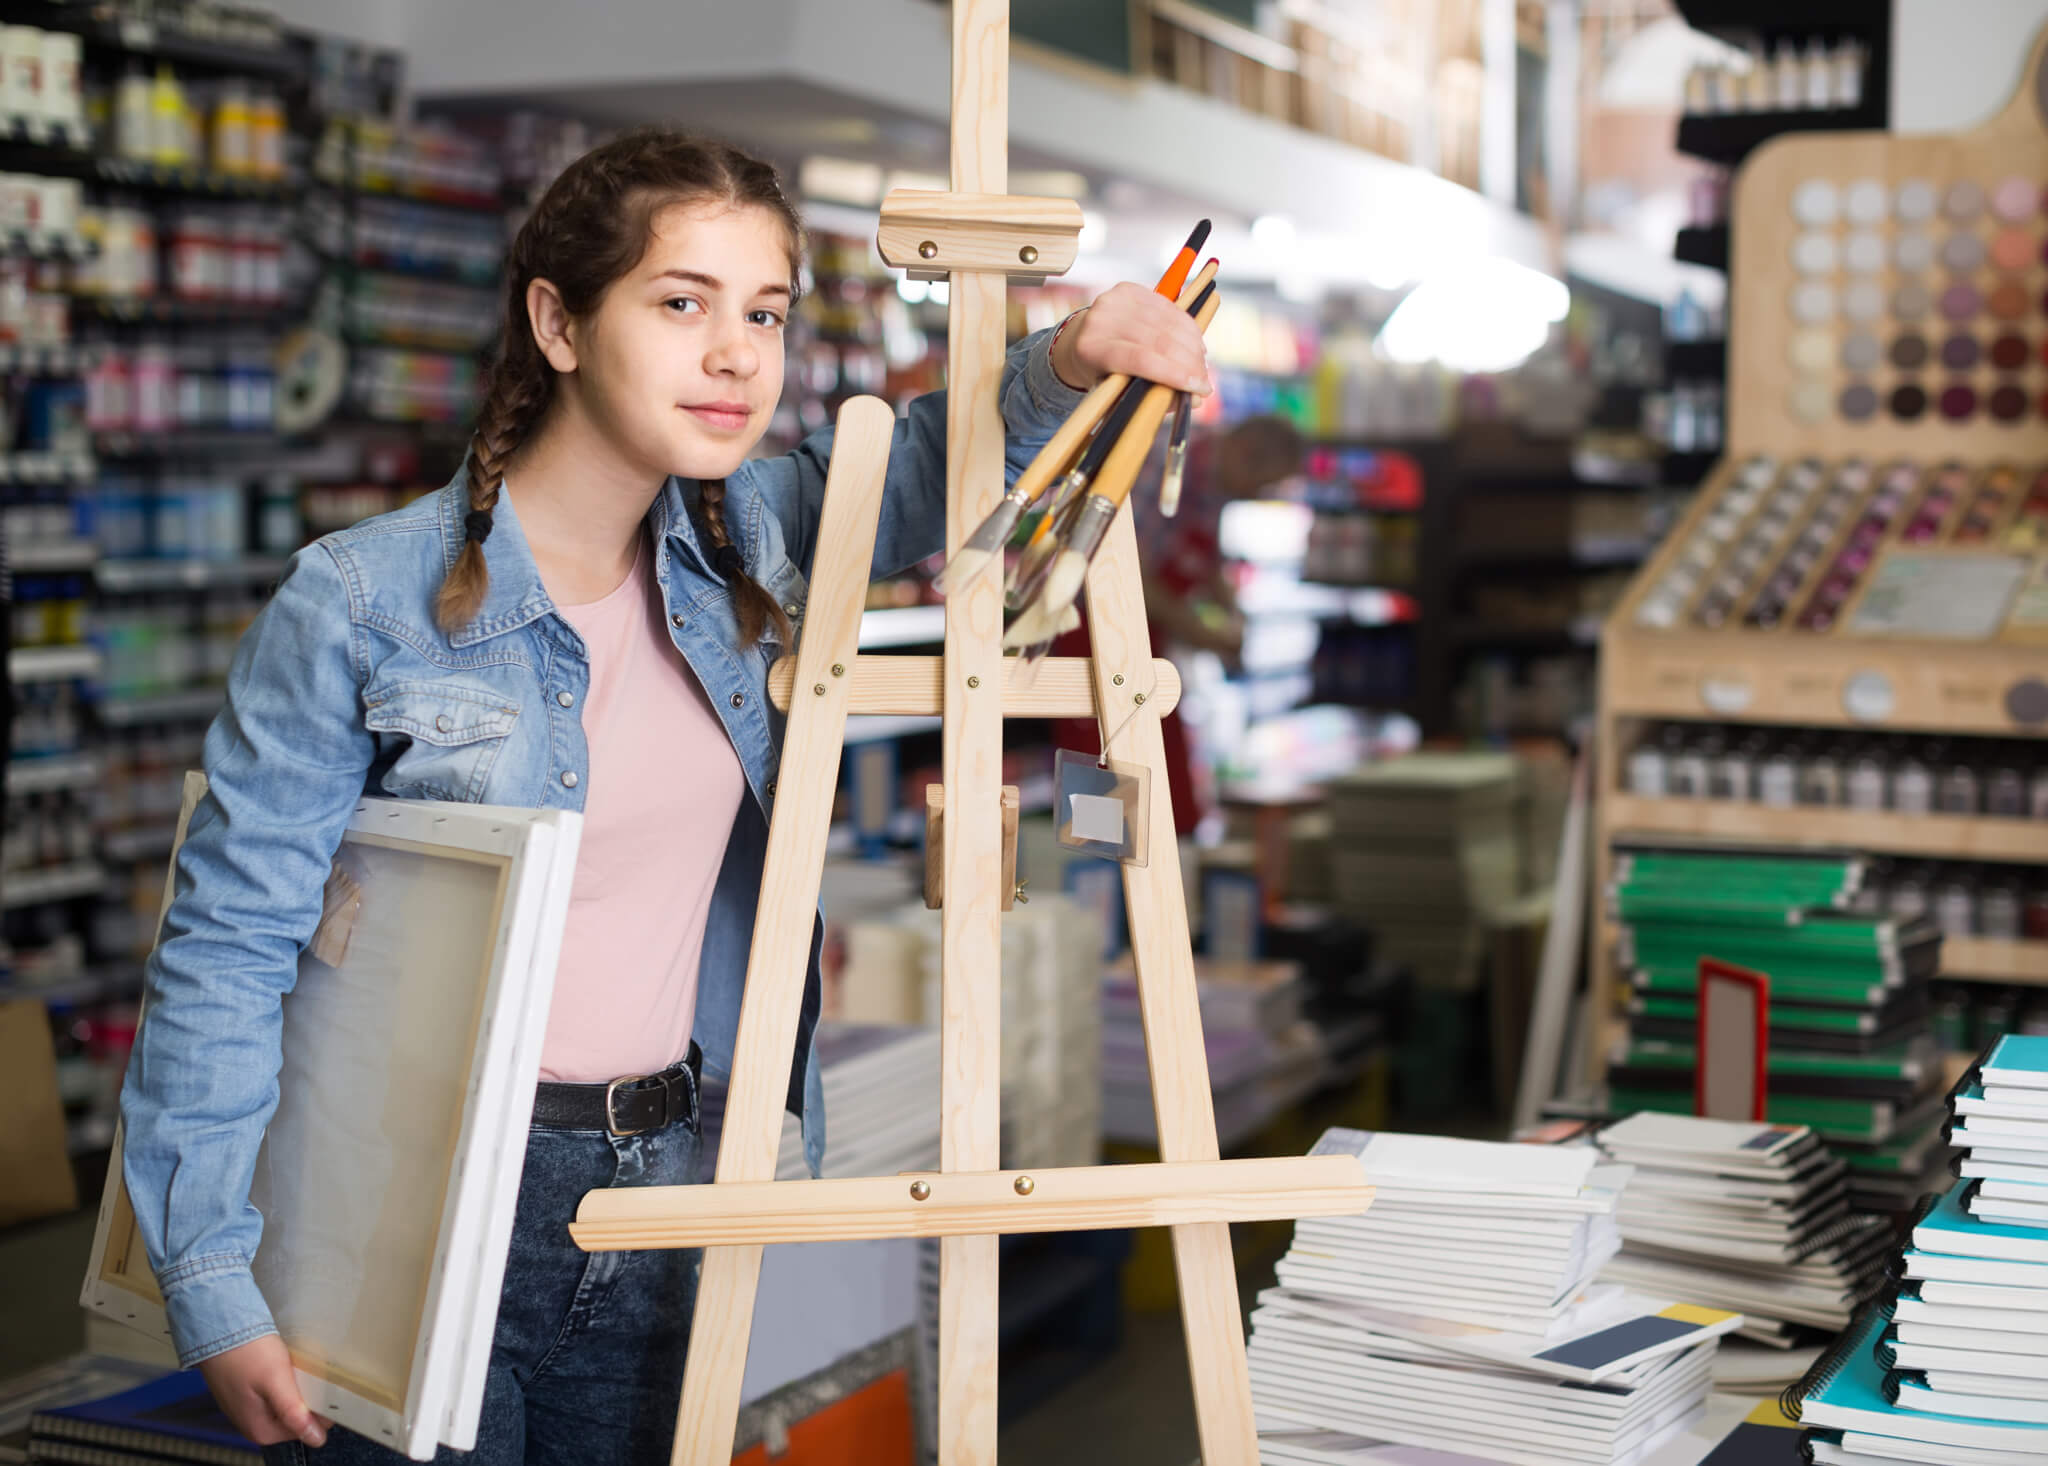 Teen girl holding supplies for painting in hands in art department